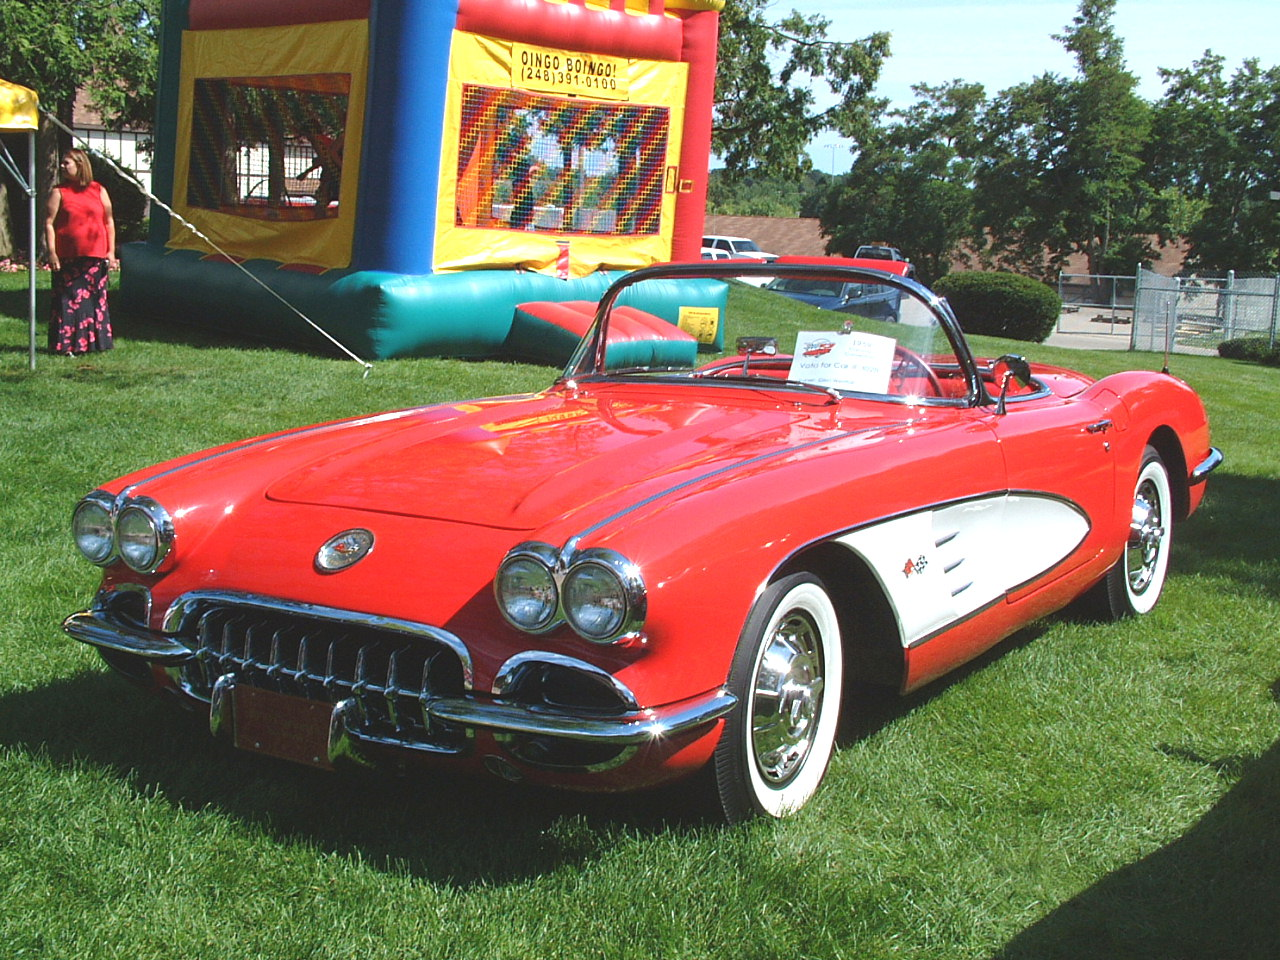 1959 Chevrolet Corvette Convertible Red Fvl Canterbury Village Car Show F